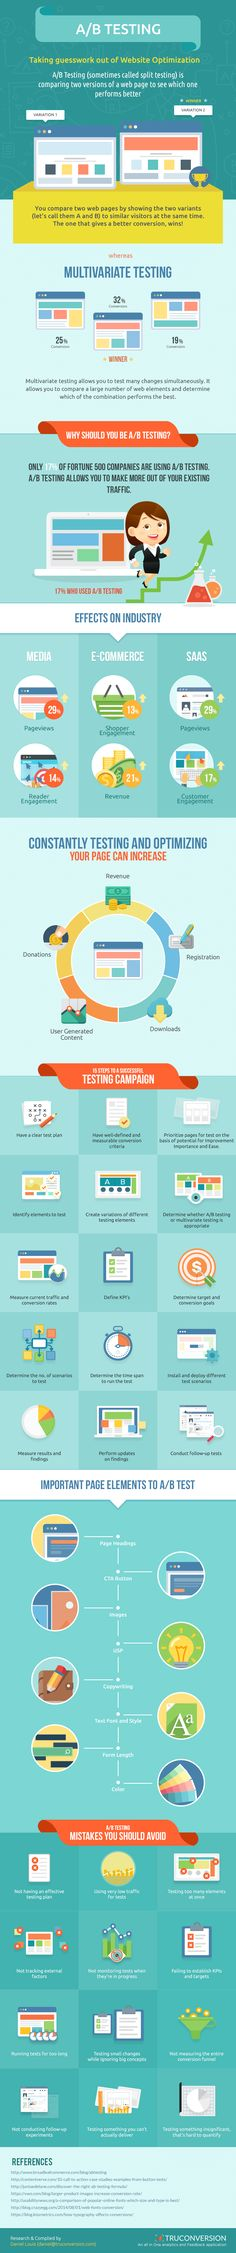 TruConversion has created the following infographic to help marketers walk through the complete process of A/B testing. It provides valuable suggestions for which elements you should test as well as the Dos and Don'ts of A/B testing.